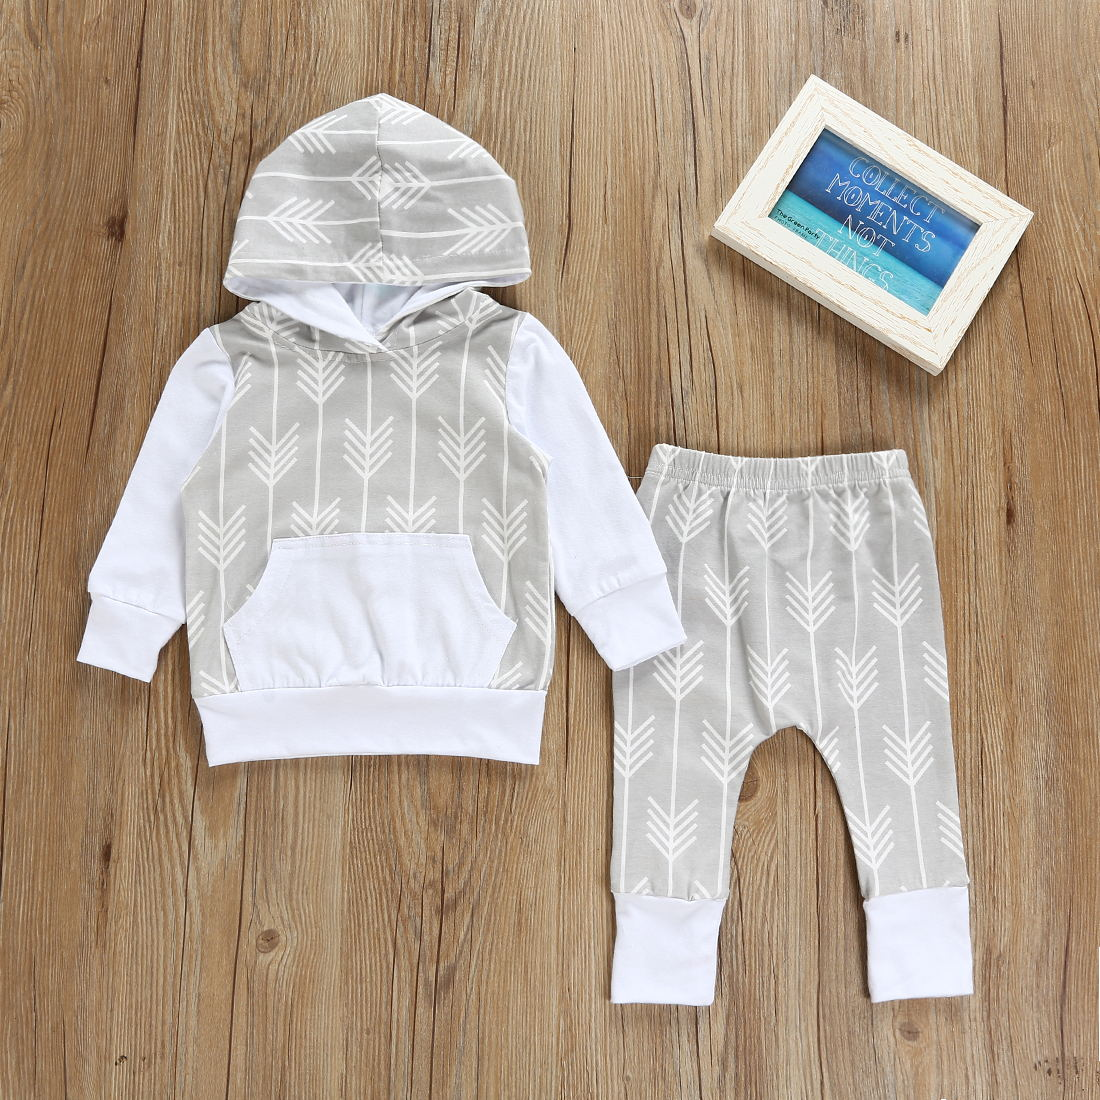 2PCS Newborn Baby Boys Cotton Clothes Set Hooded Tops Long Sleeve+Pants 2018 New Hoodie Suit Infant Clothing Free Shipping